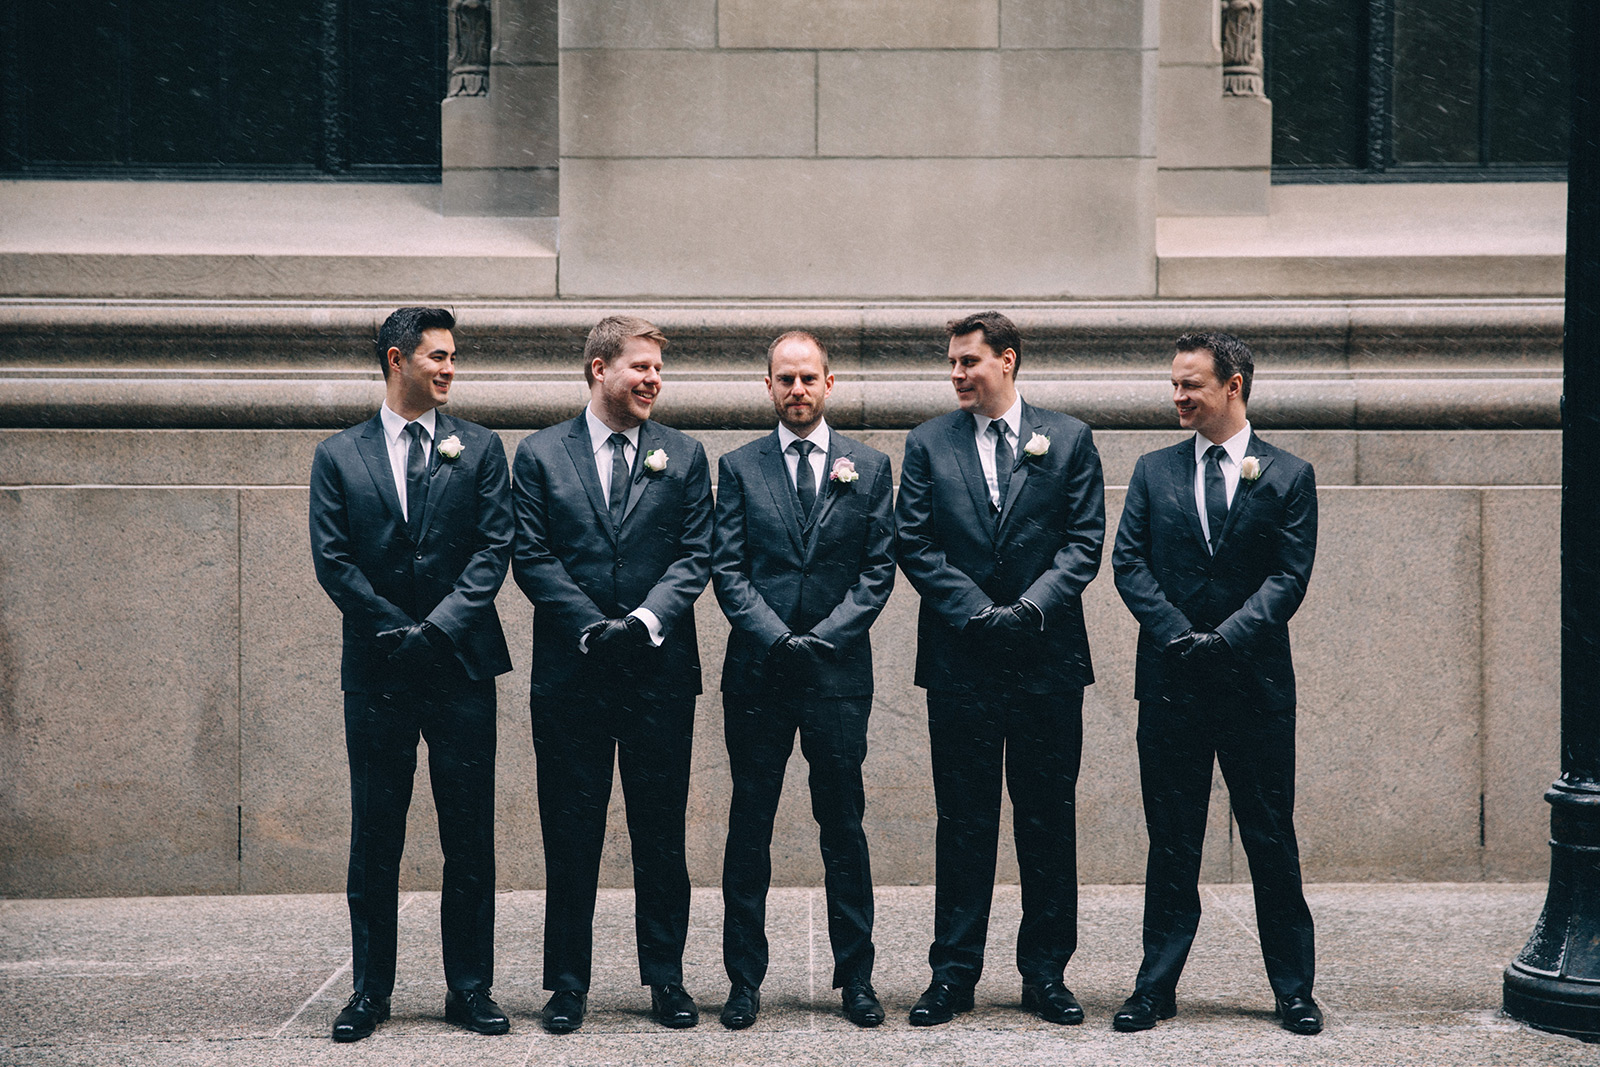 One-King-West-Toronto-wedding-photography_Sam-Wong-of-Visual-Cravings_KnR-17